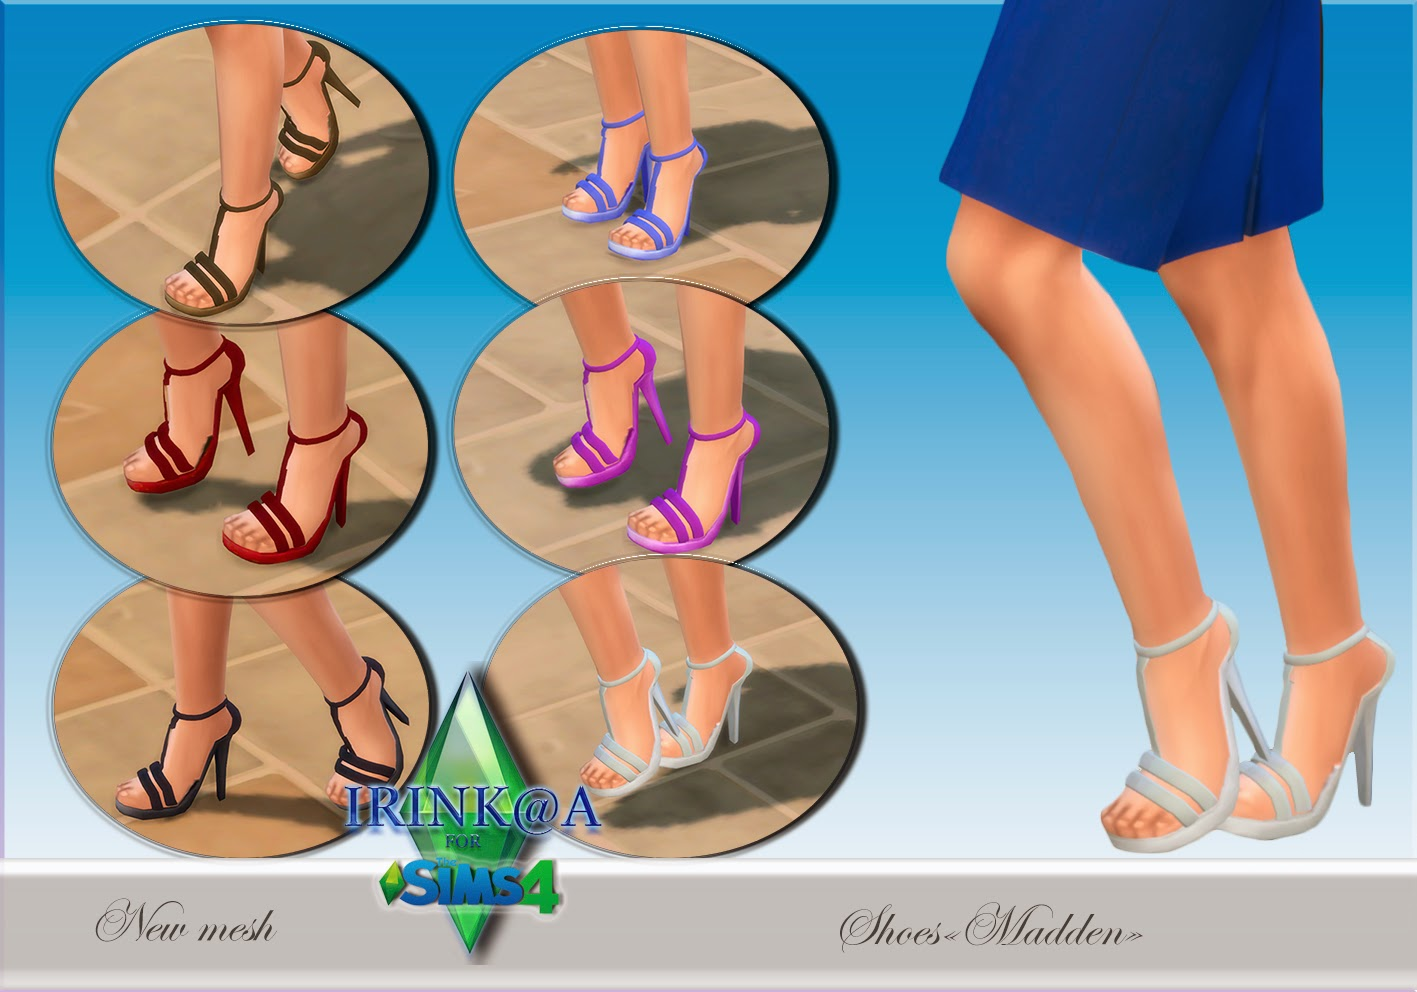 Shoes for Teen - Elder Females by Irink@a